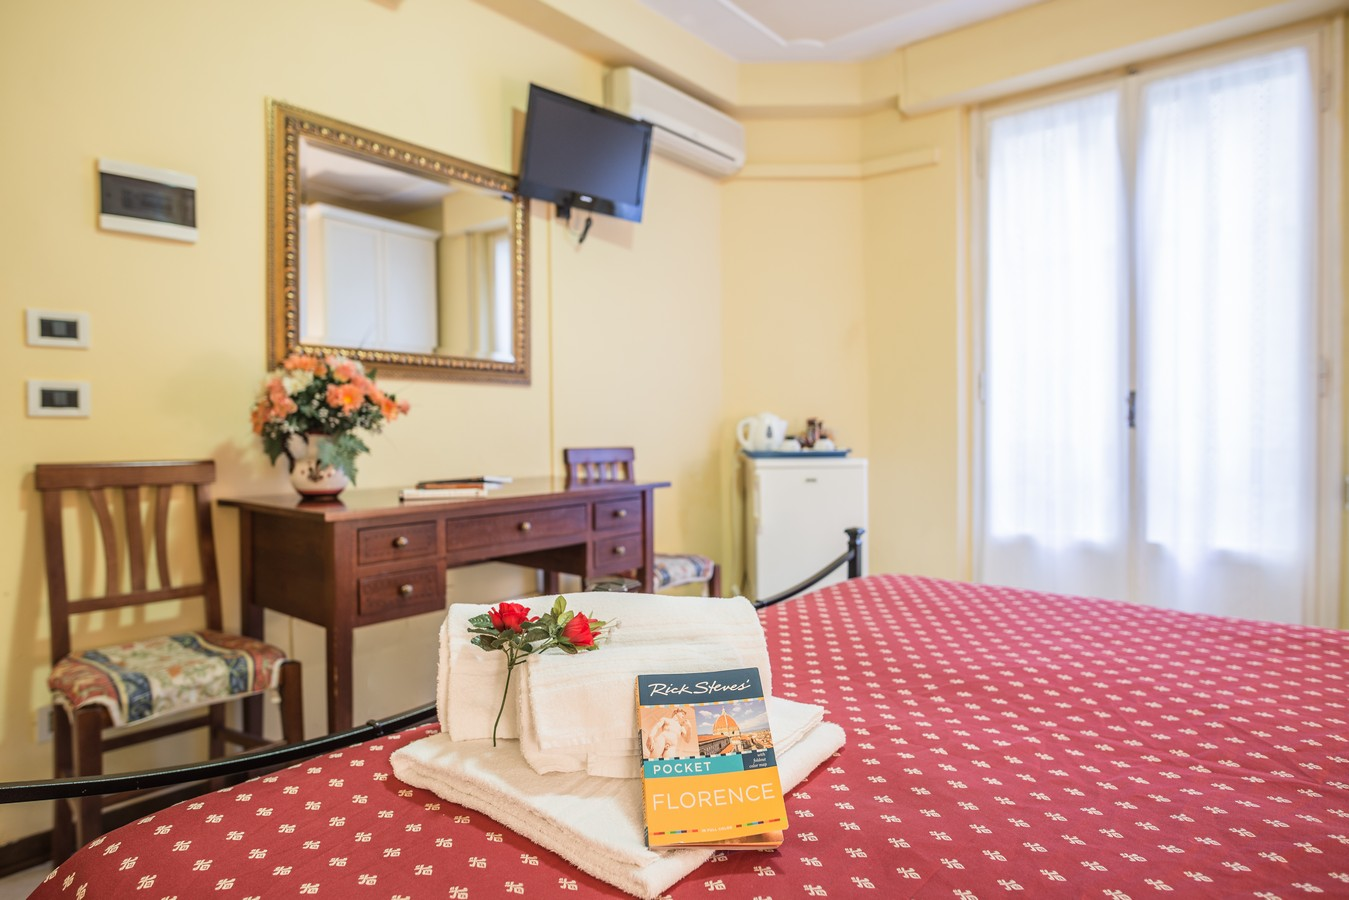 BED AND BREAKFAST Firenze Toscana - Soggiorno Alessandra Firenze